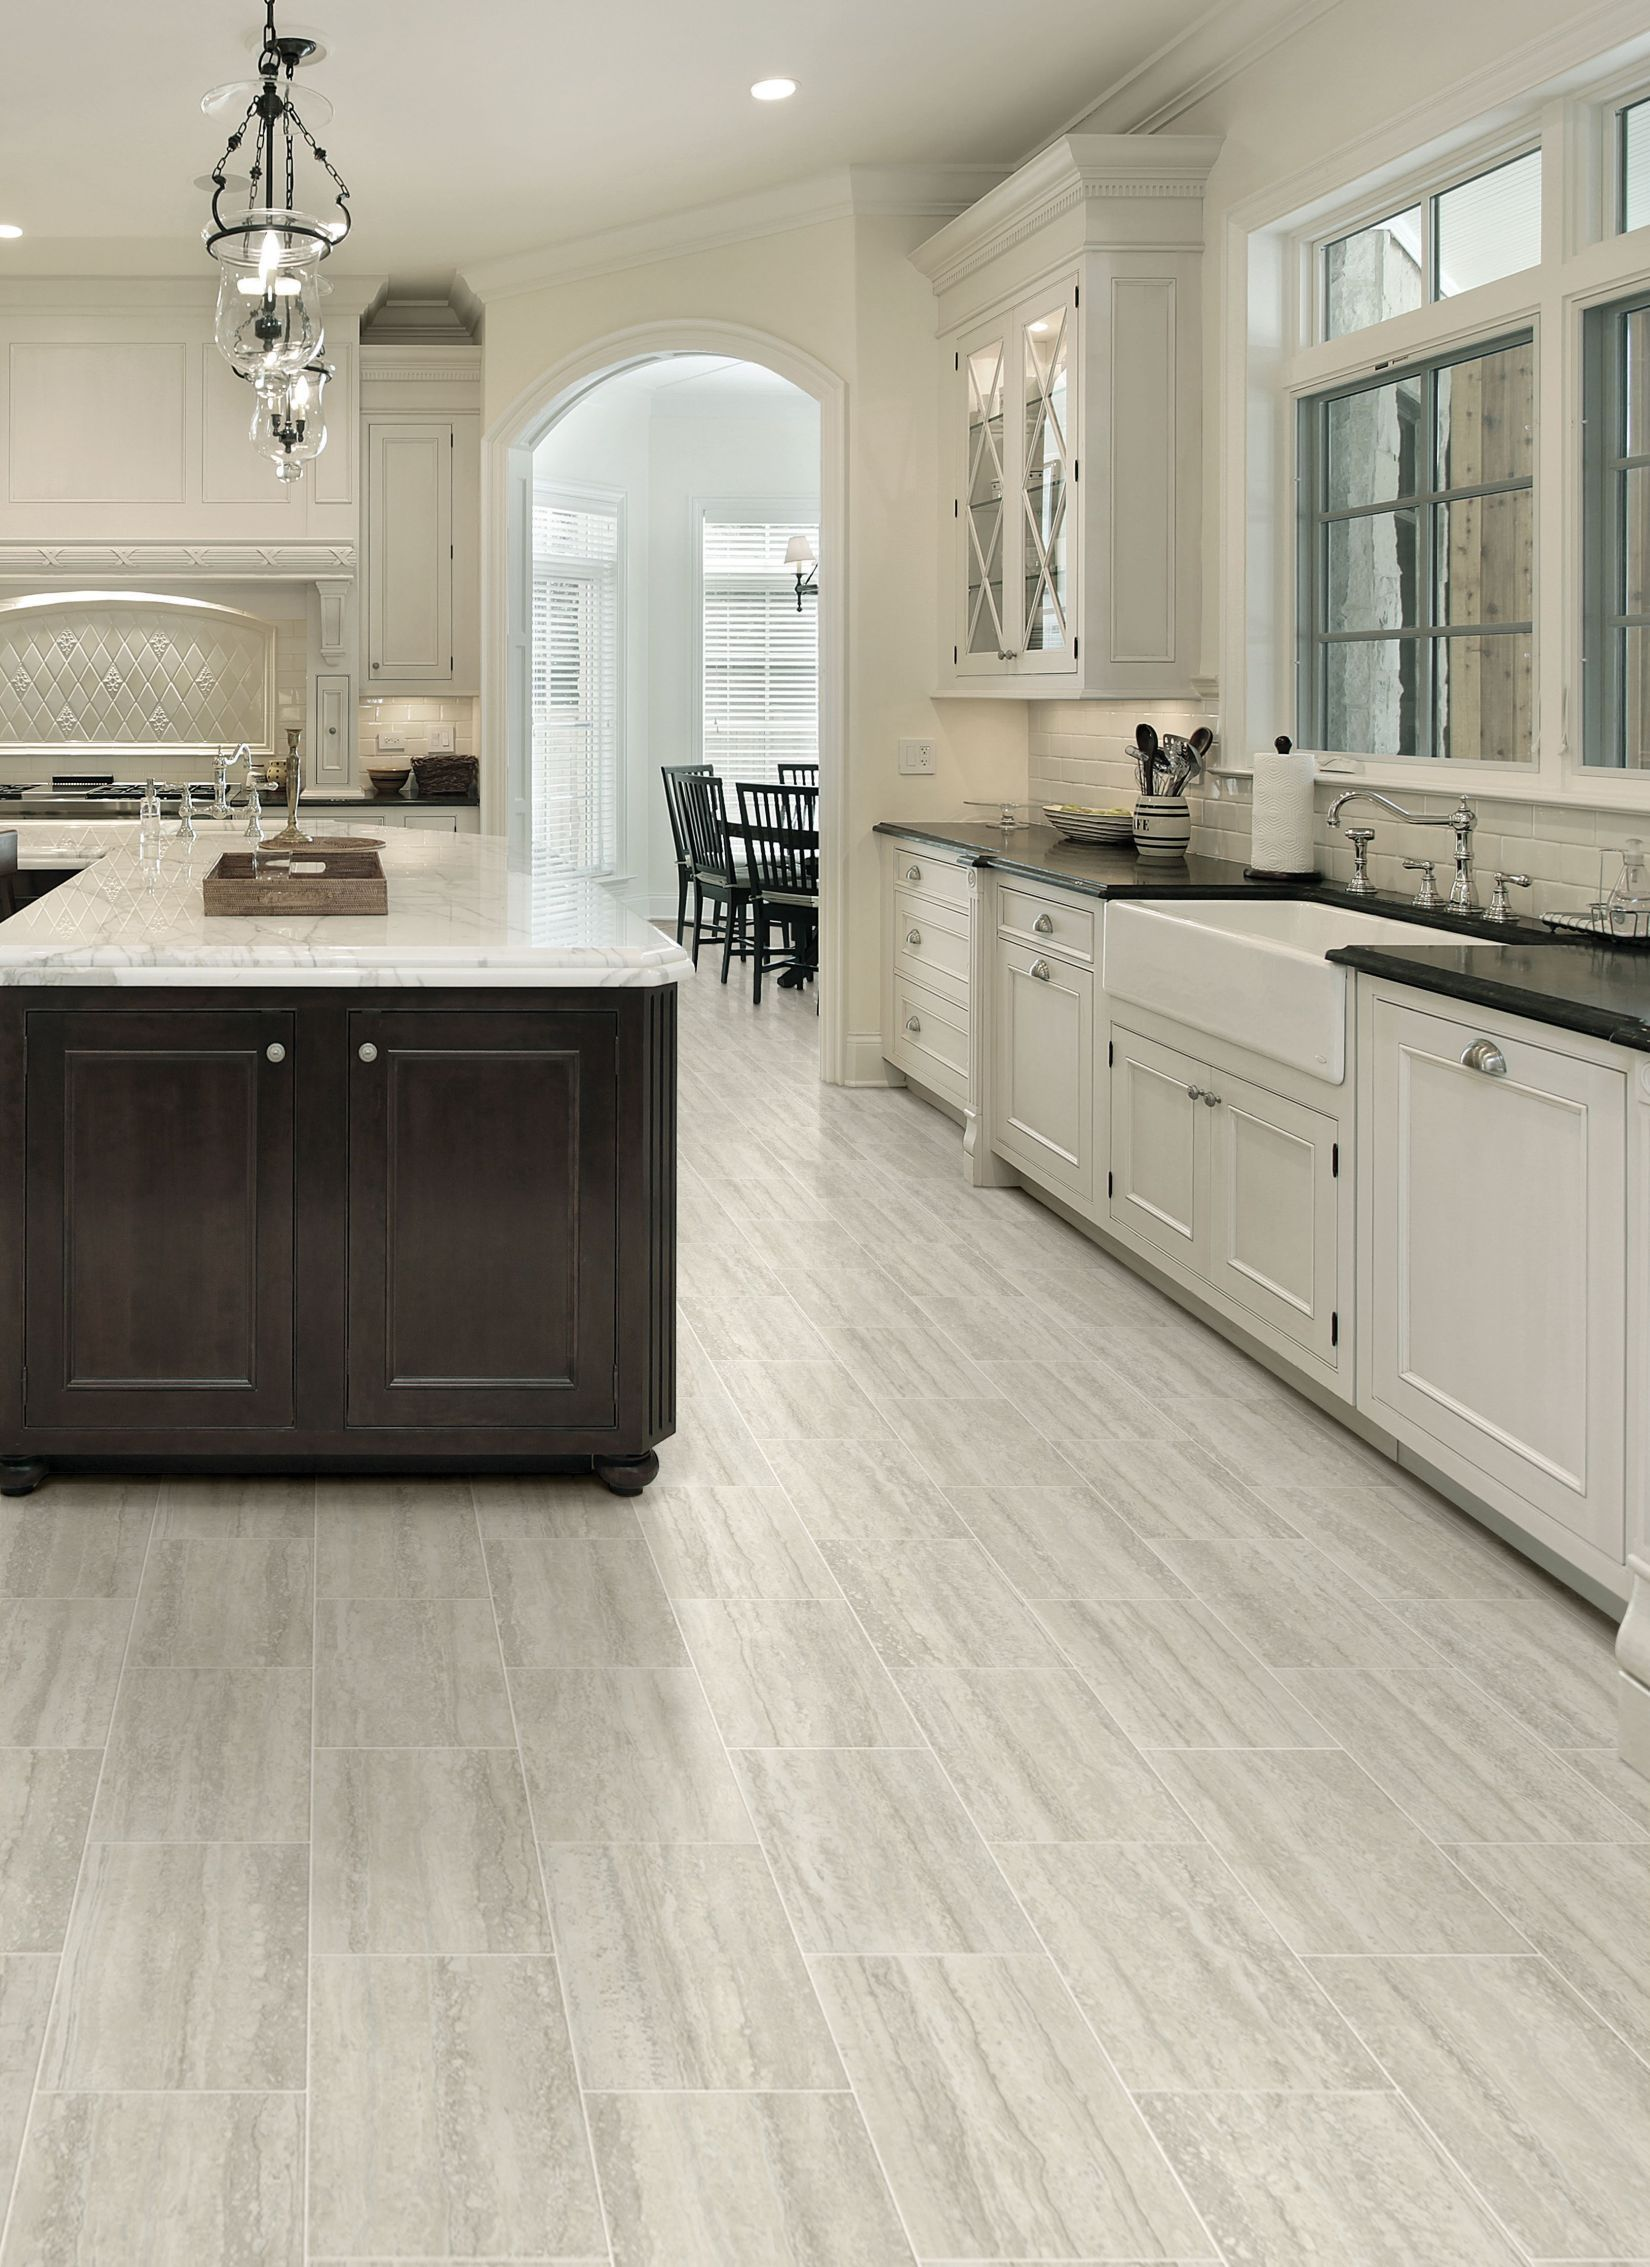 80 Alluring Kitchen Floor Ideas You Must Have 2018 New Housee